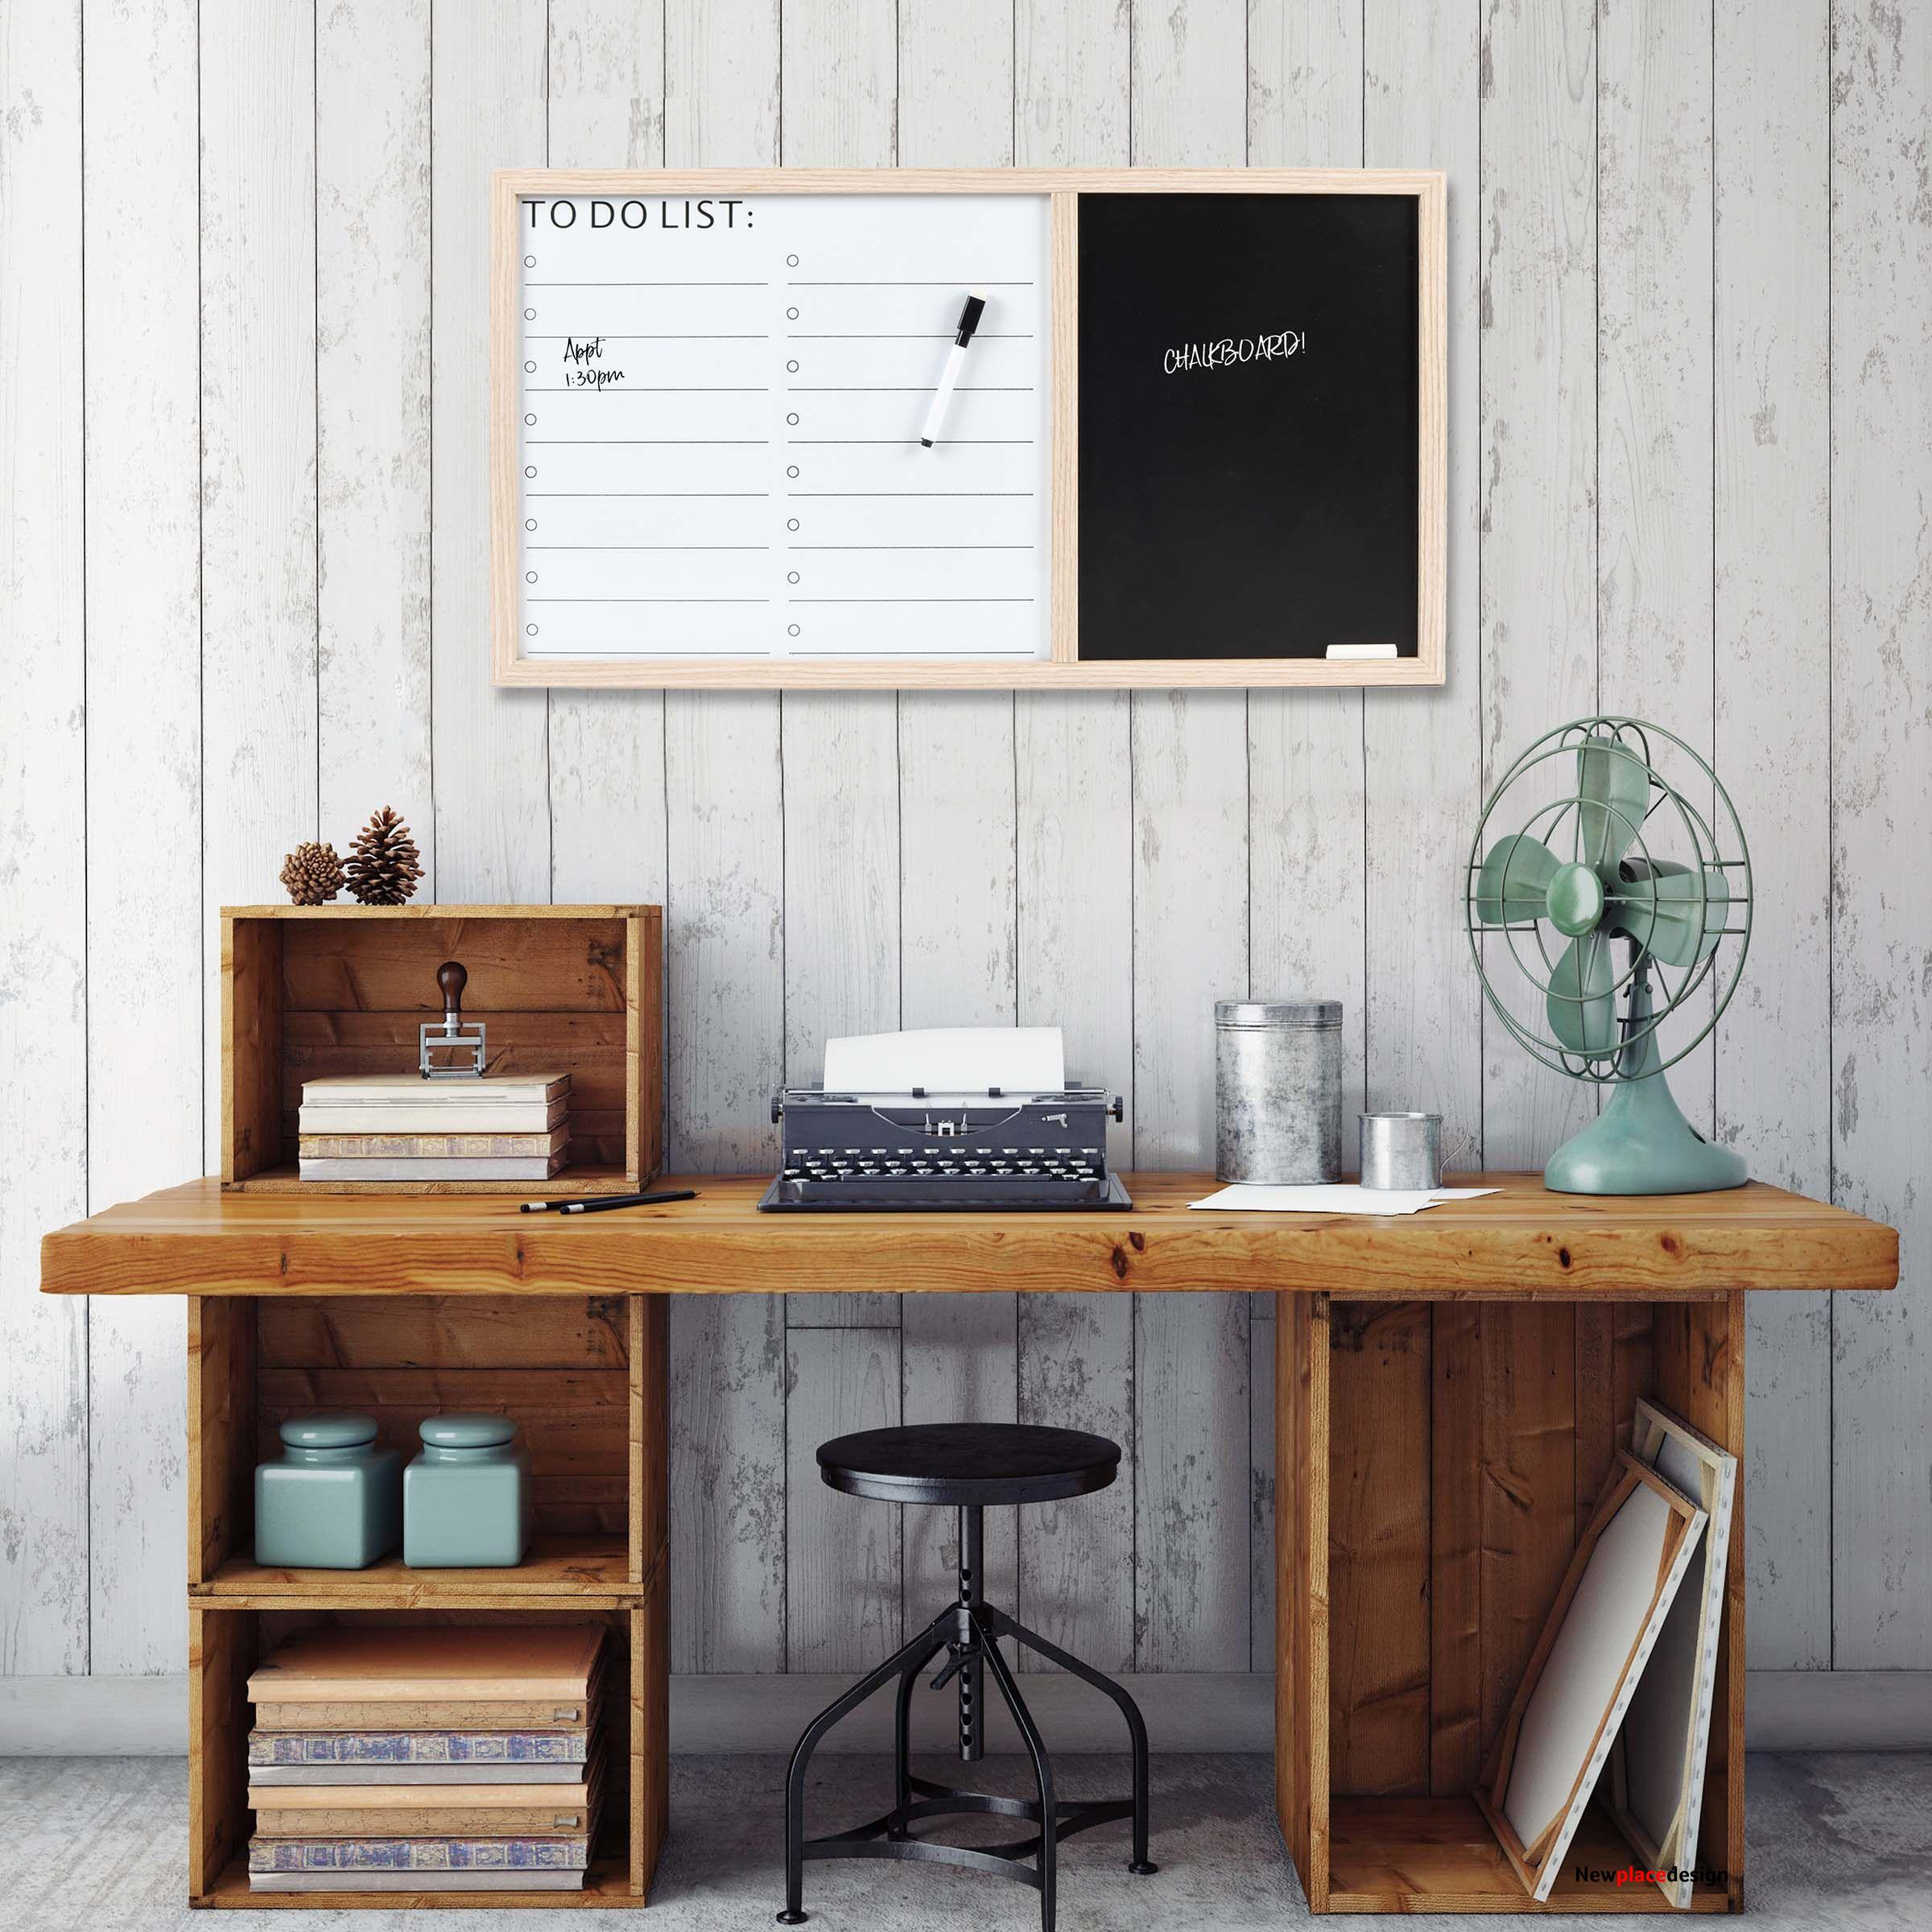 Framed Wall Mounted 26 x 14-inch Dry Erase To-Do List & Chalkboard, Tan